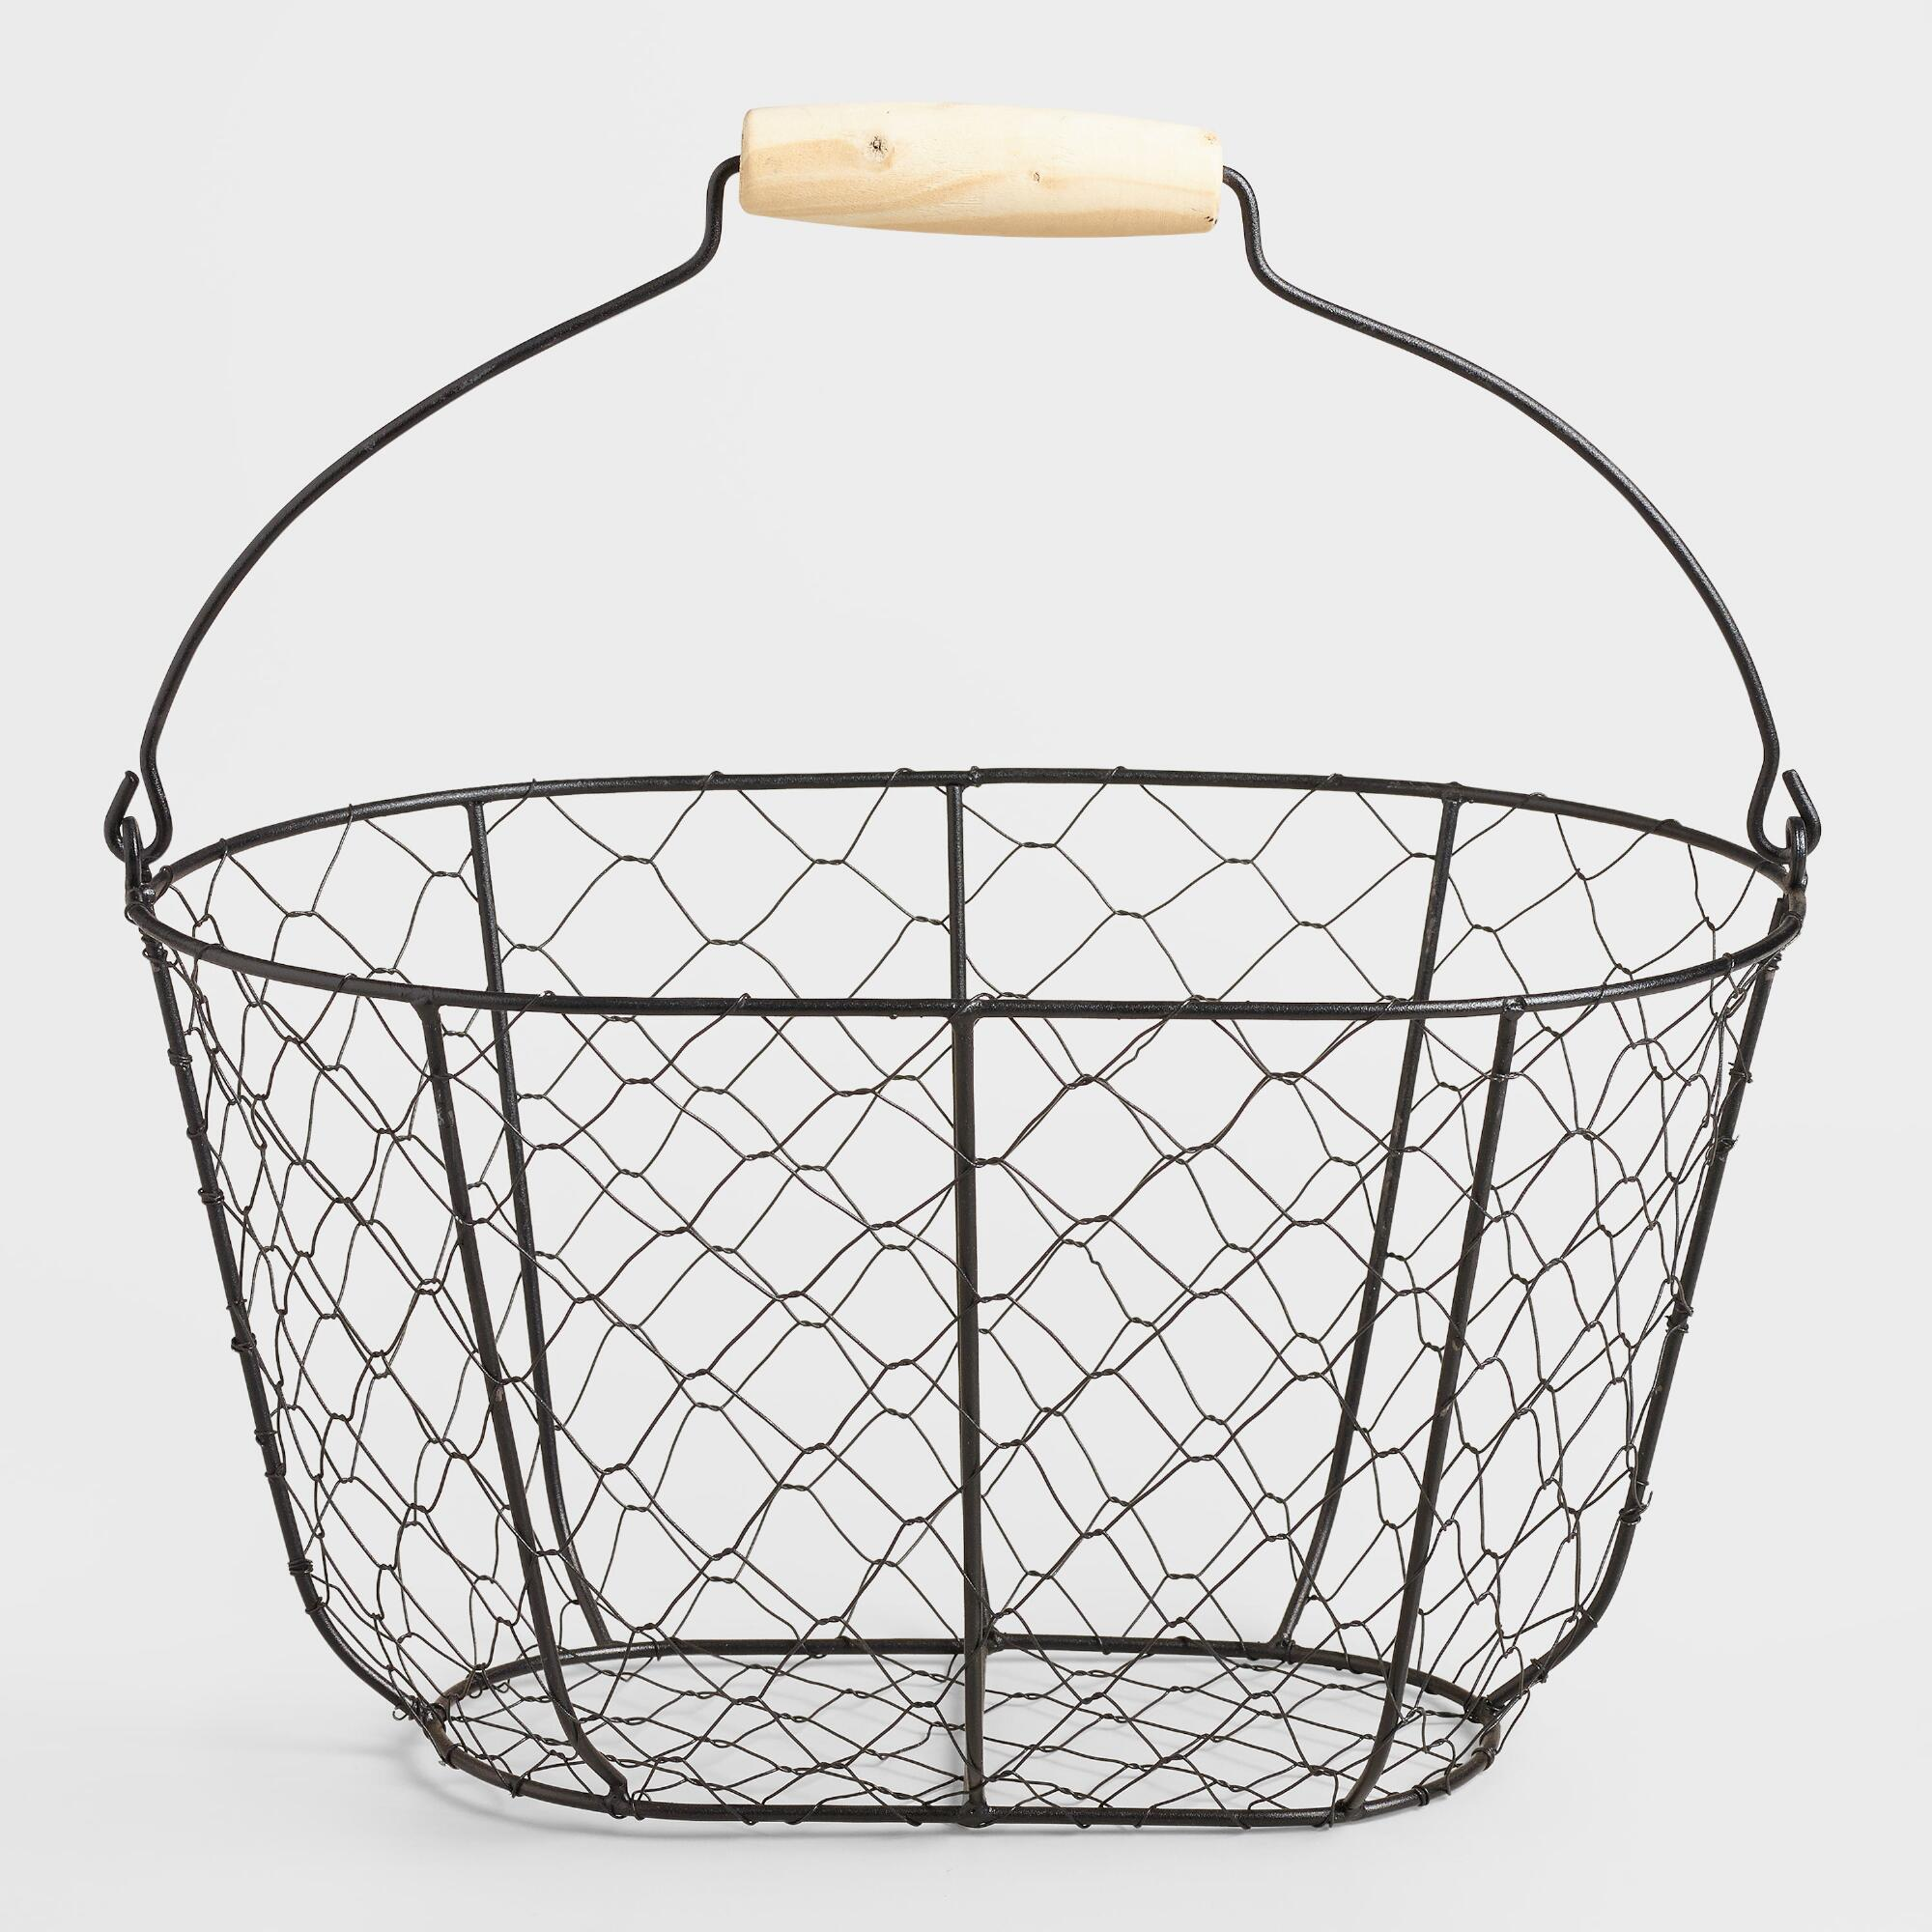 A chic solution to needing more space to store everyday necessities, the Gourmet Basics by Mikasa 3-Tier Wire Market Basket features 3 square baskets to hold food and more. The sturdy steel frame is designed for rigorous use, and can be cleaned easily.